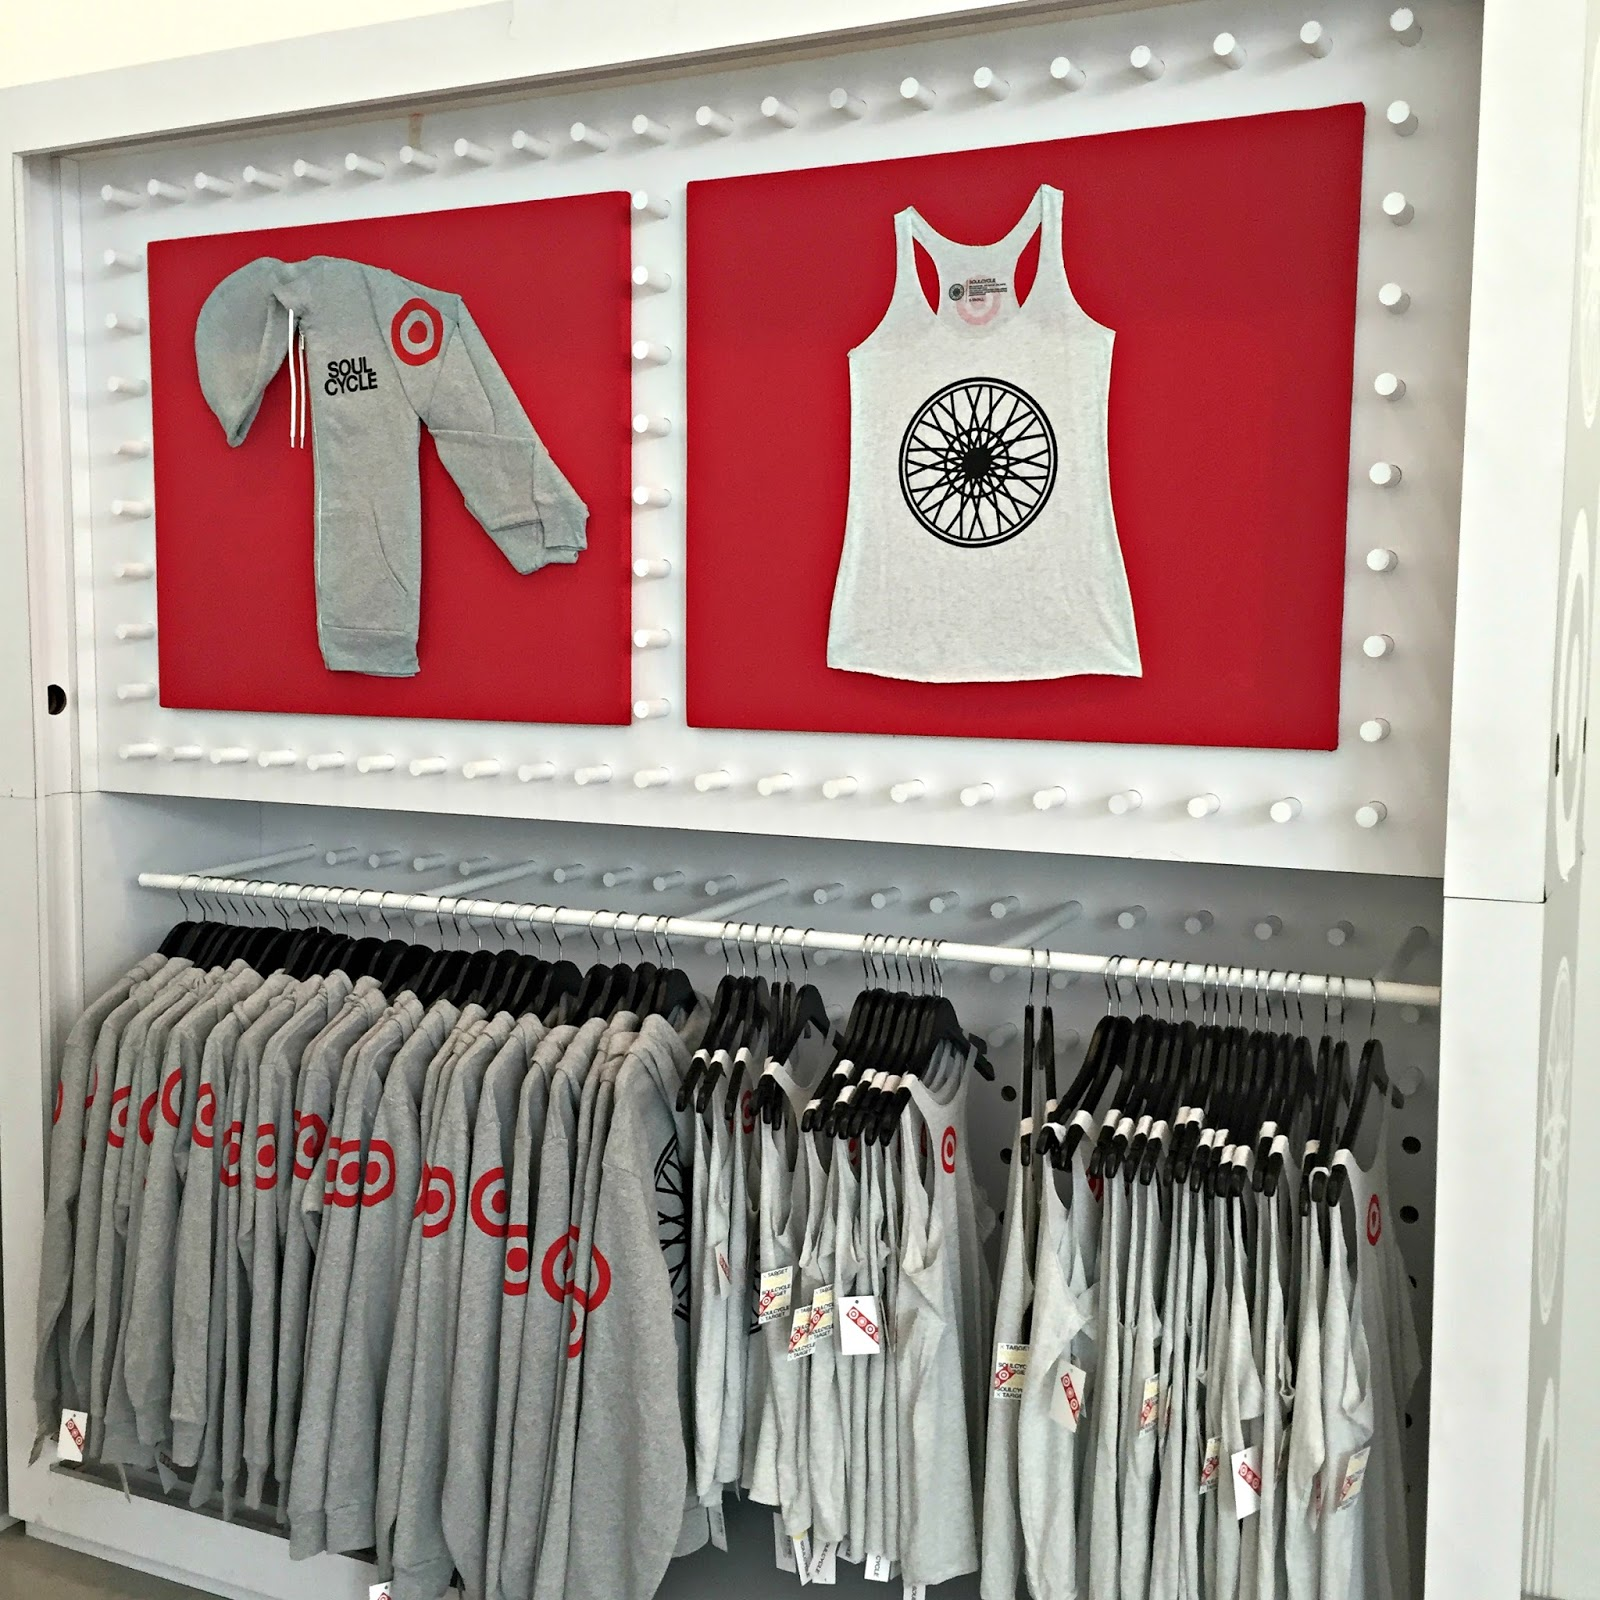 Chicago Jogger: My First SoulCycle Class